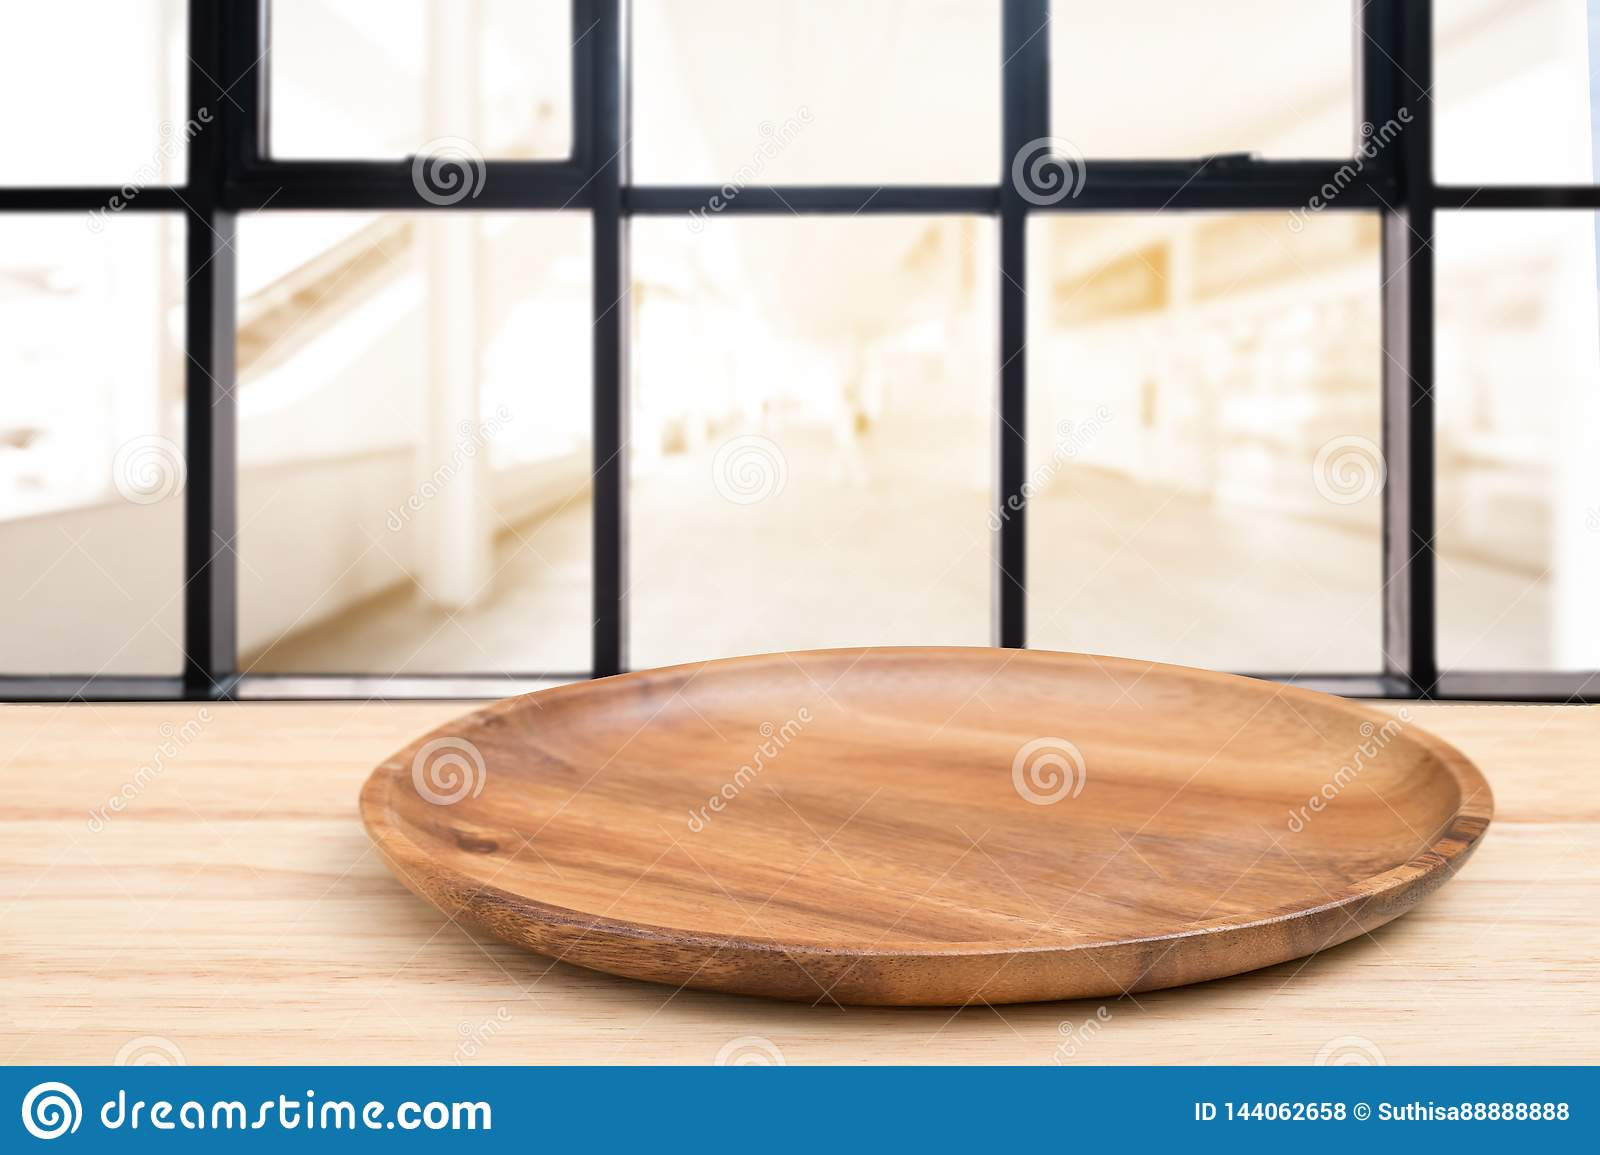 Perspective Wooden Table And Wooden Tray On Top Over Blur Coffee Shop Background Can Be Used Mock Up For Montage Products Display Stock Photo Image Of Coffee Cafe 144062658